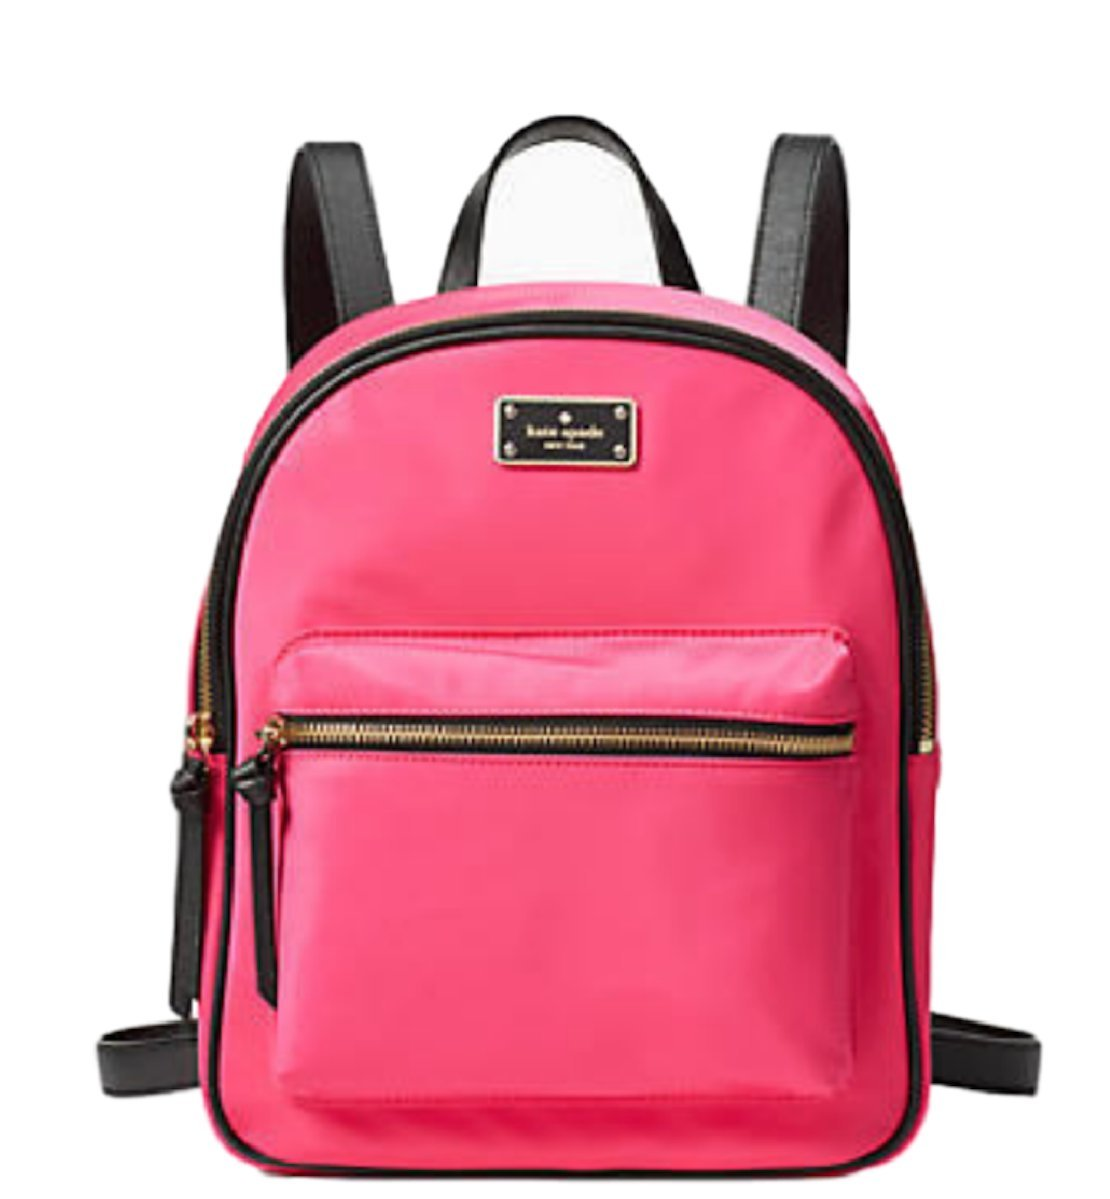 Kate Spade Wilson Road Small Bradley Pink Radish Backpack Shoulder Bag